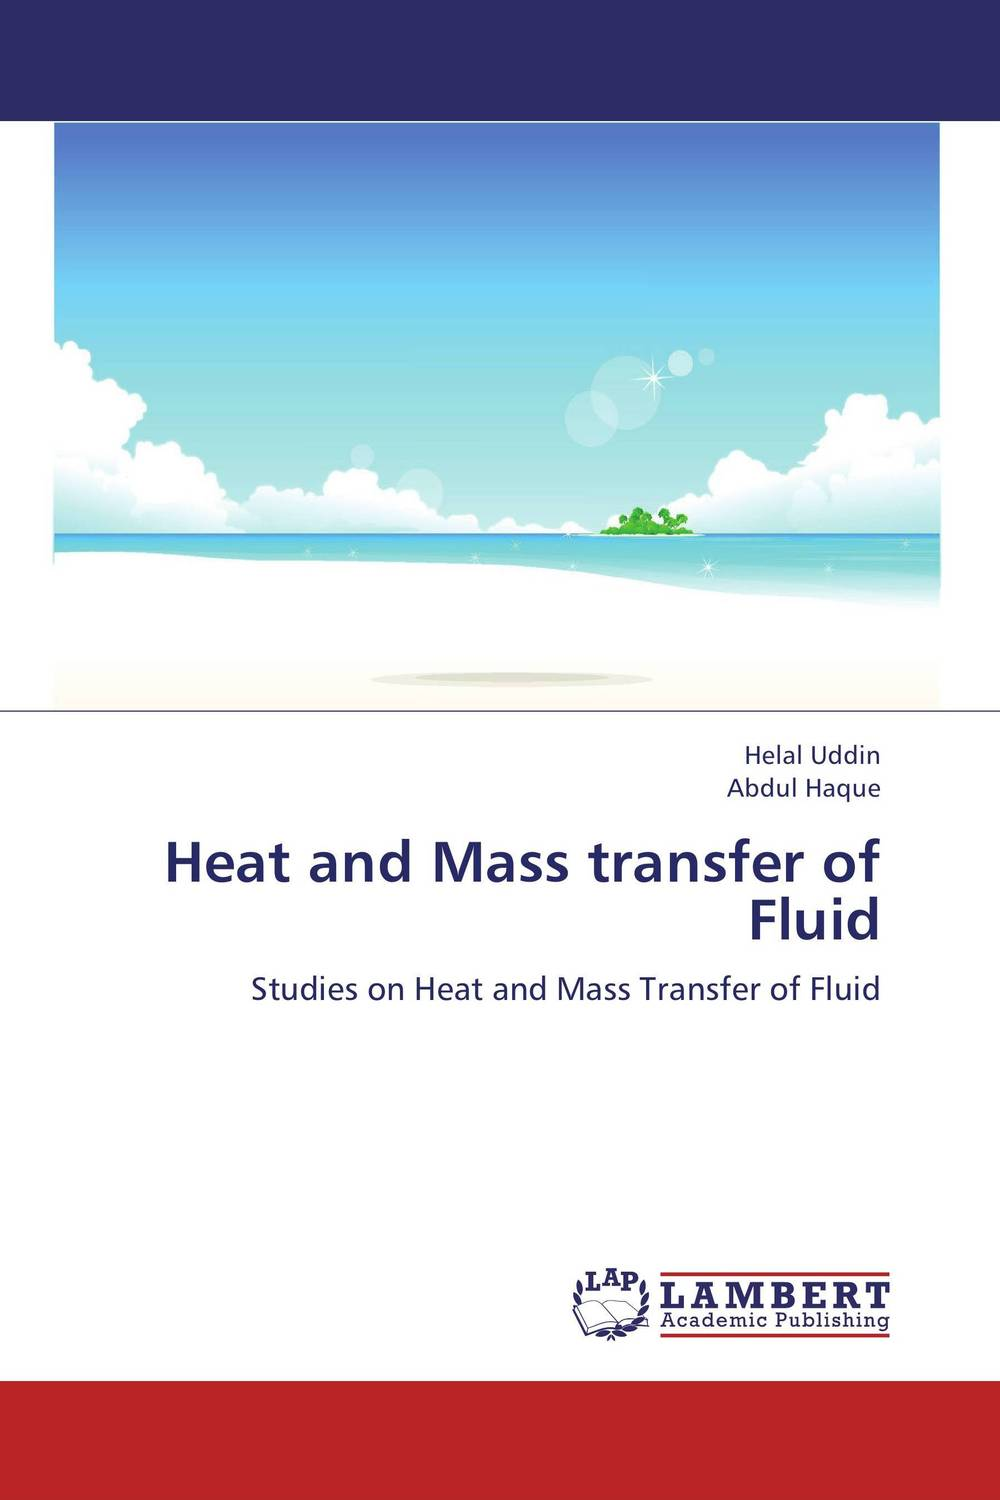 Heat and Mass transfer of Fluid bruno latour we have never been modern ois